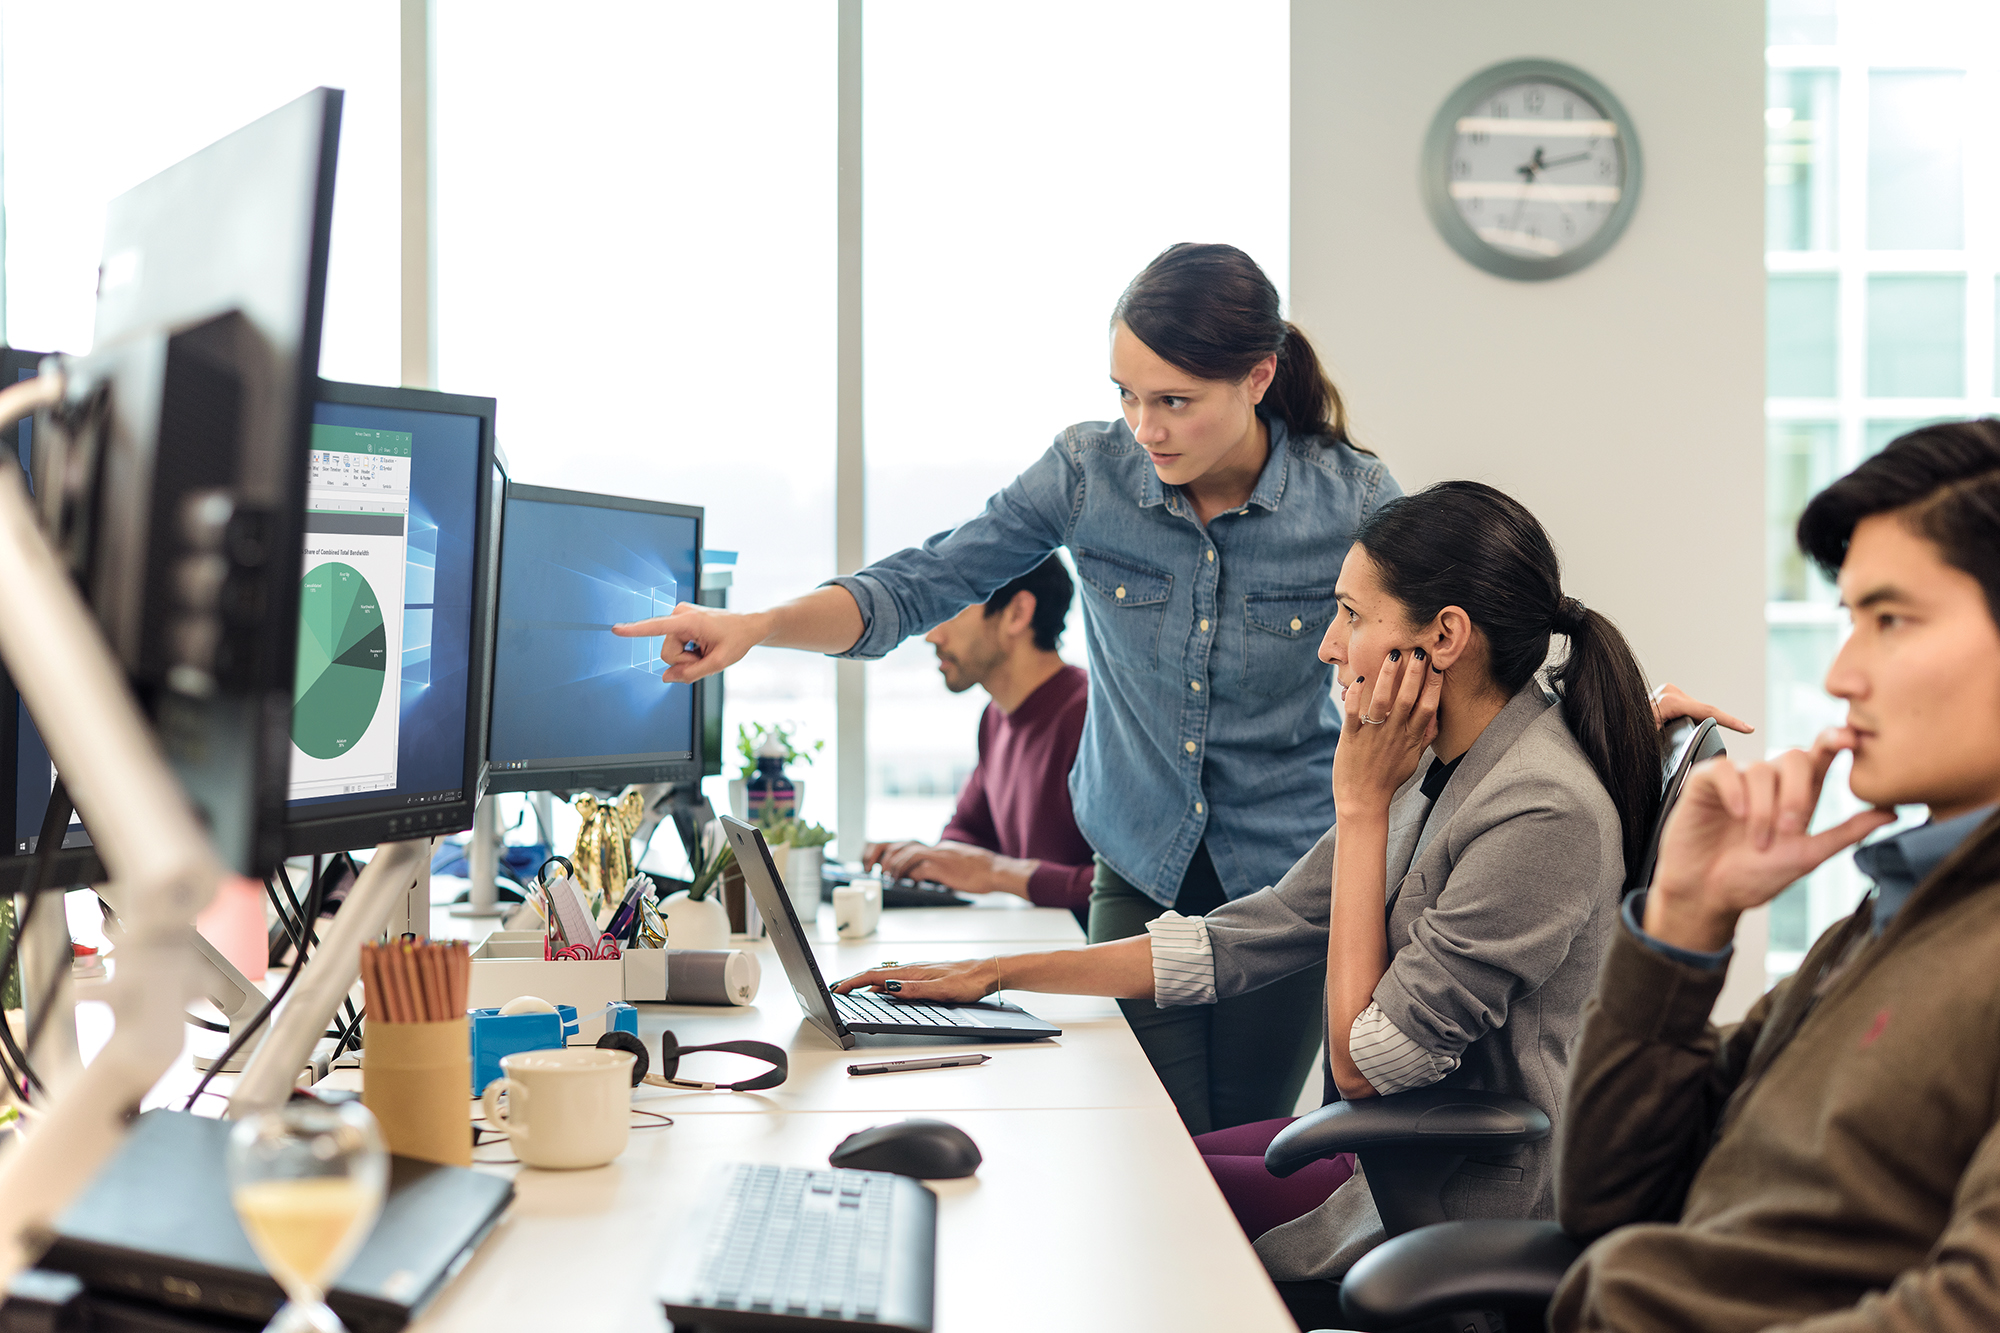 Image of coworkers pointing at a computer monitor.